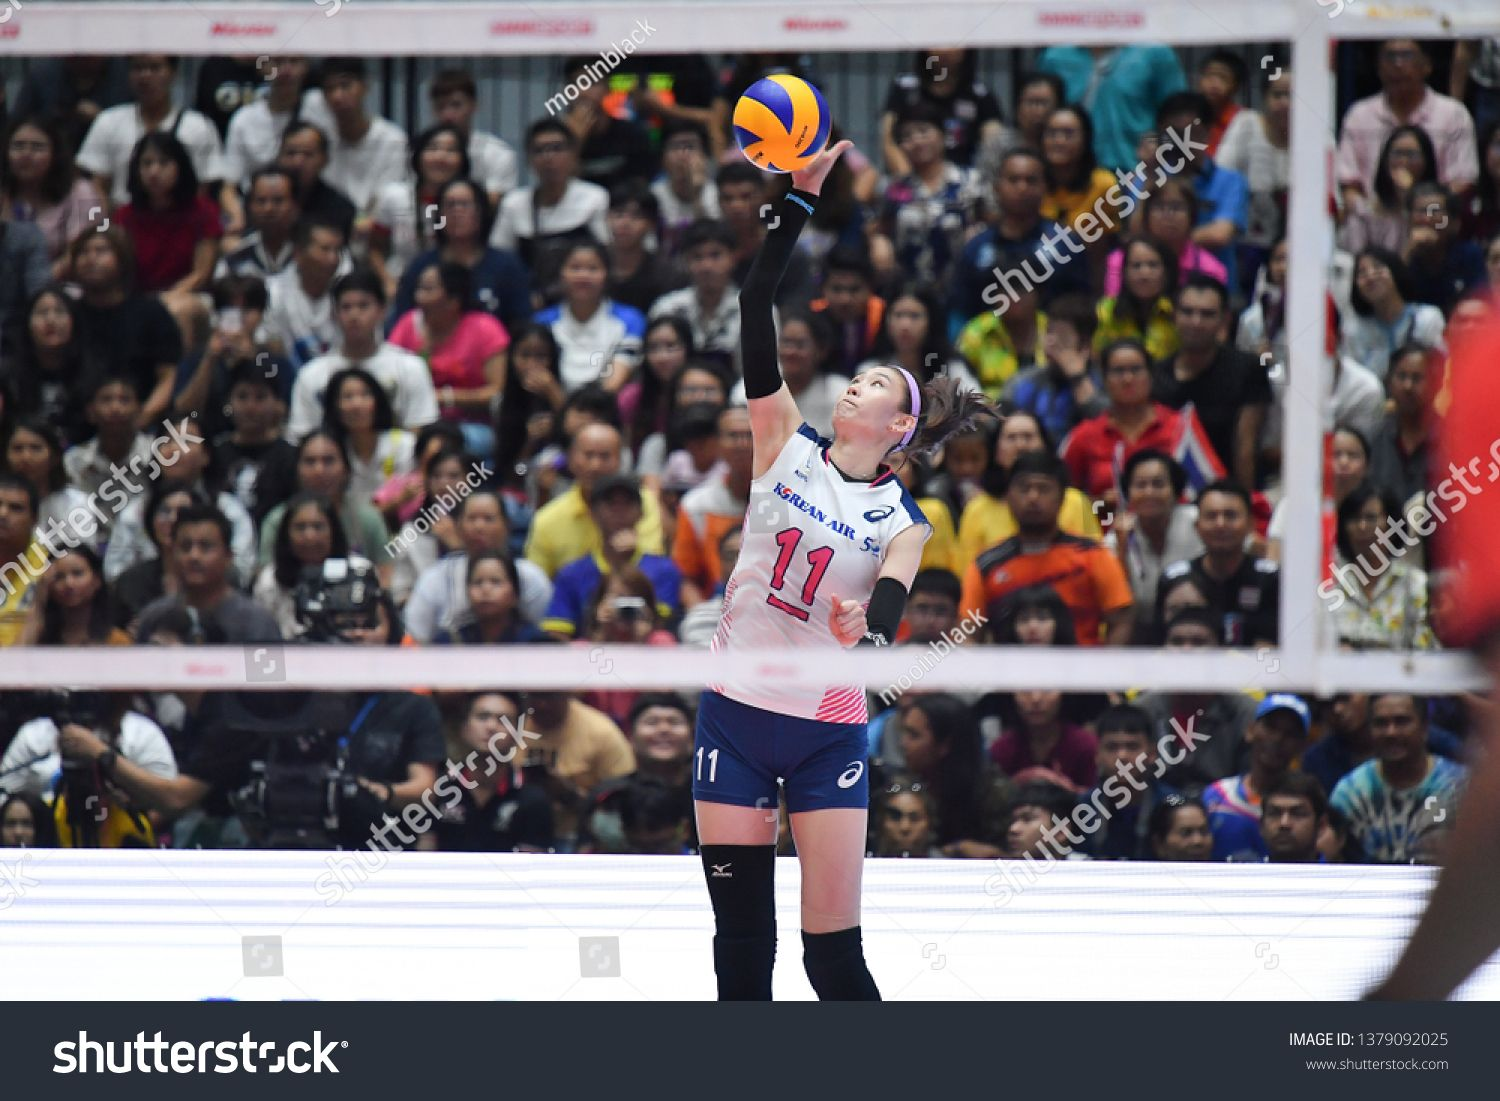 Kim Suji No 11 White Of Korea In Action During The Volleyball Korea Thailand All Star Super Match 2019 At Terminal 21 Hall On Photo Editing Stock Photos Kim